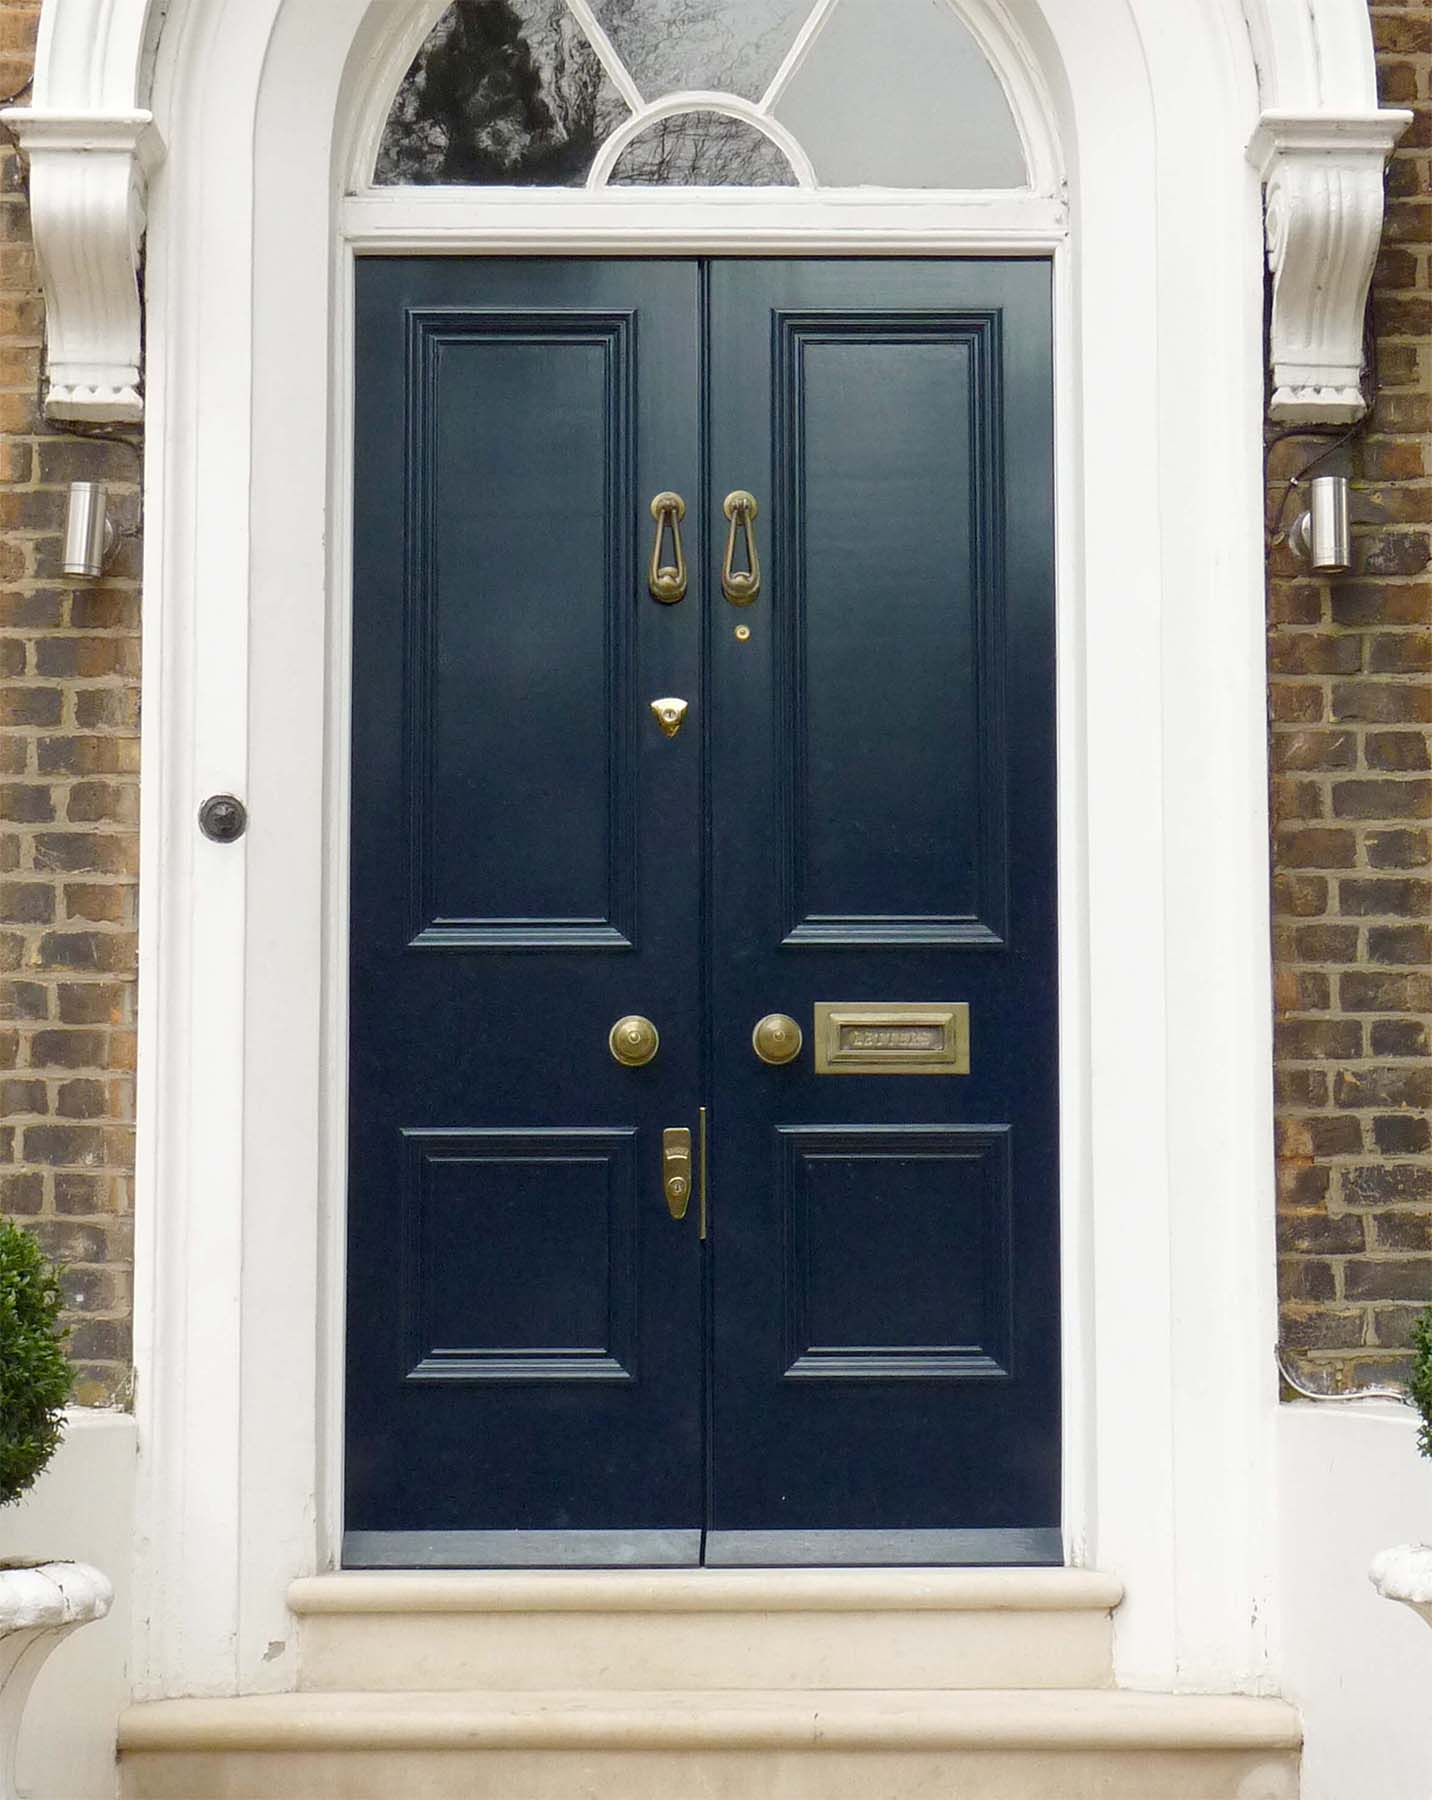 Blue front french door with gold hardware round transom white trim with red brick house